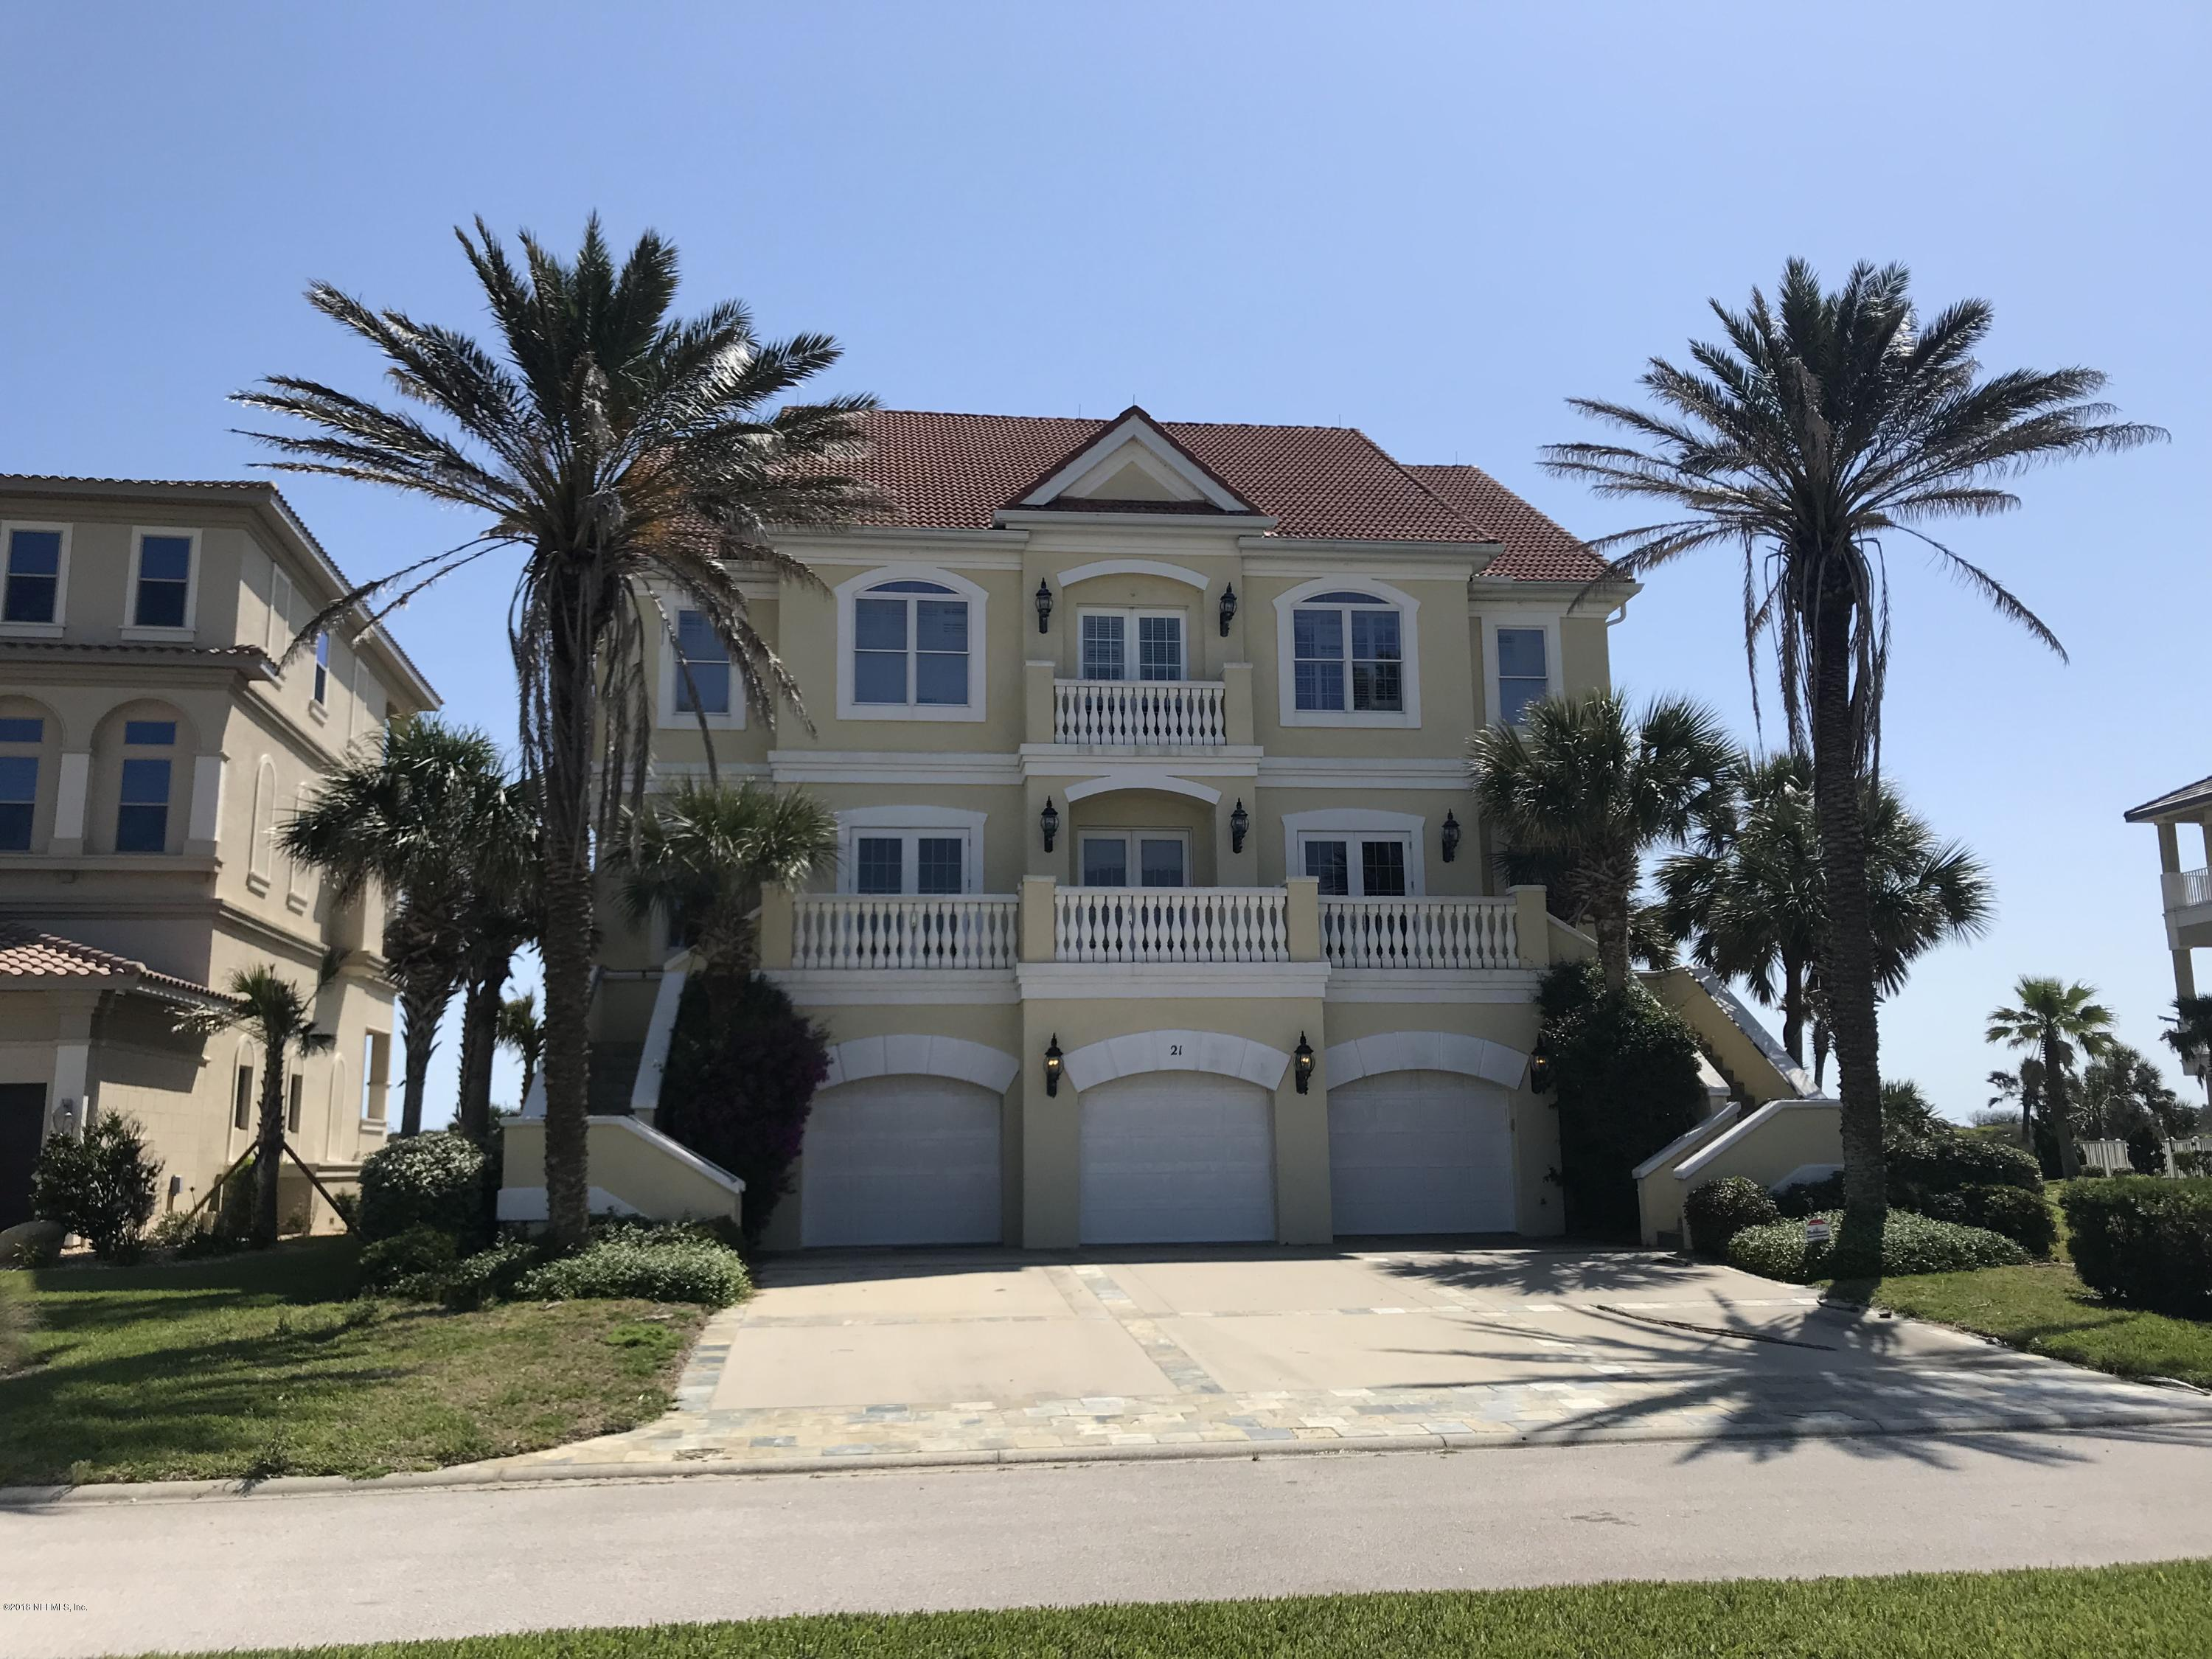 21 Ocean Ridge, PALM COAST, FLORIDA 32137, 6 Bedrooms Bedrooms, ,5 BathroomsBathrooms,Residential - single family,For sale,Ocean Ridge,947347